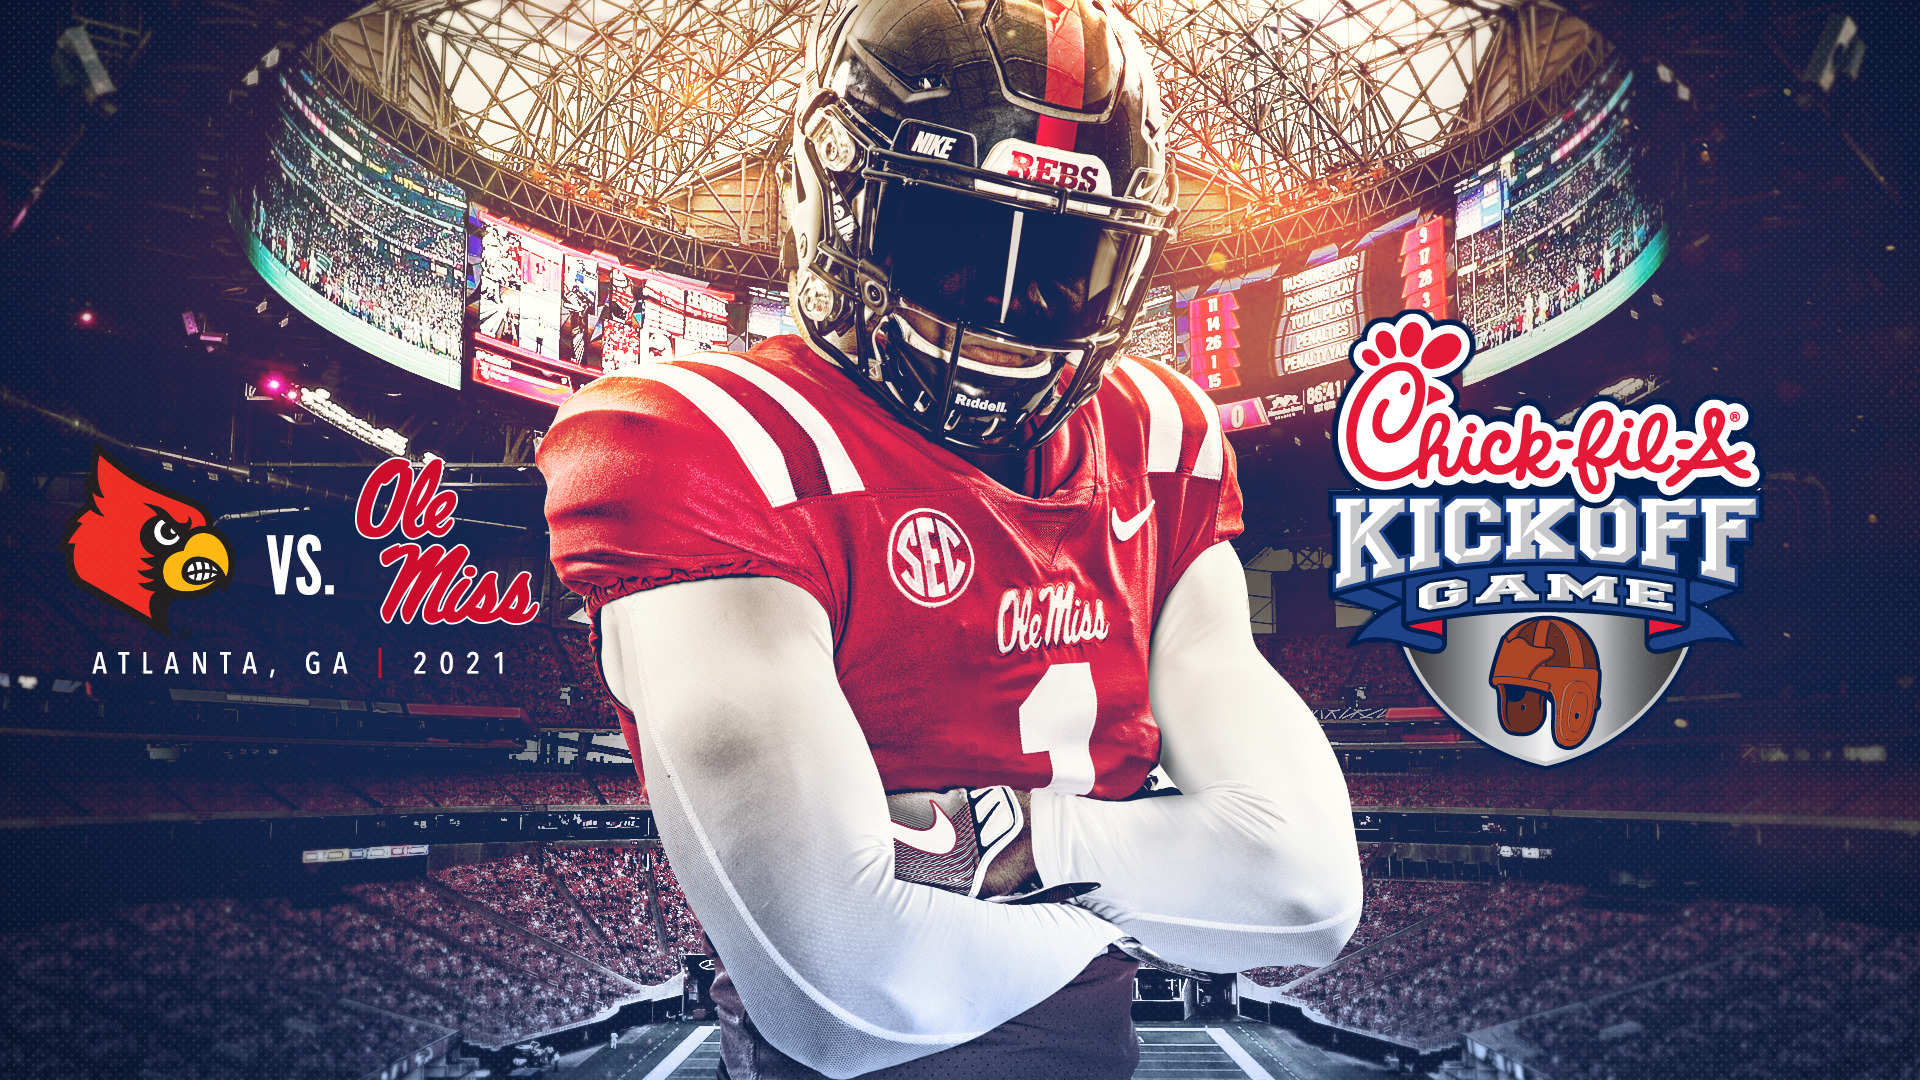 Ole Miss To Face Louisville In 2021 Chick Fil A Kickoff Game Ole